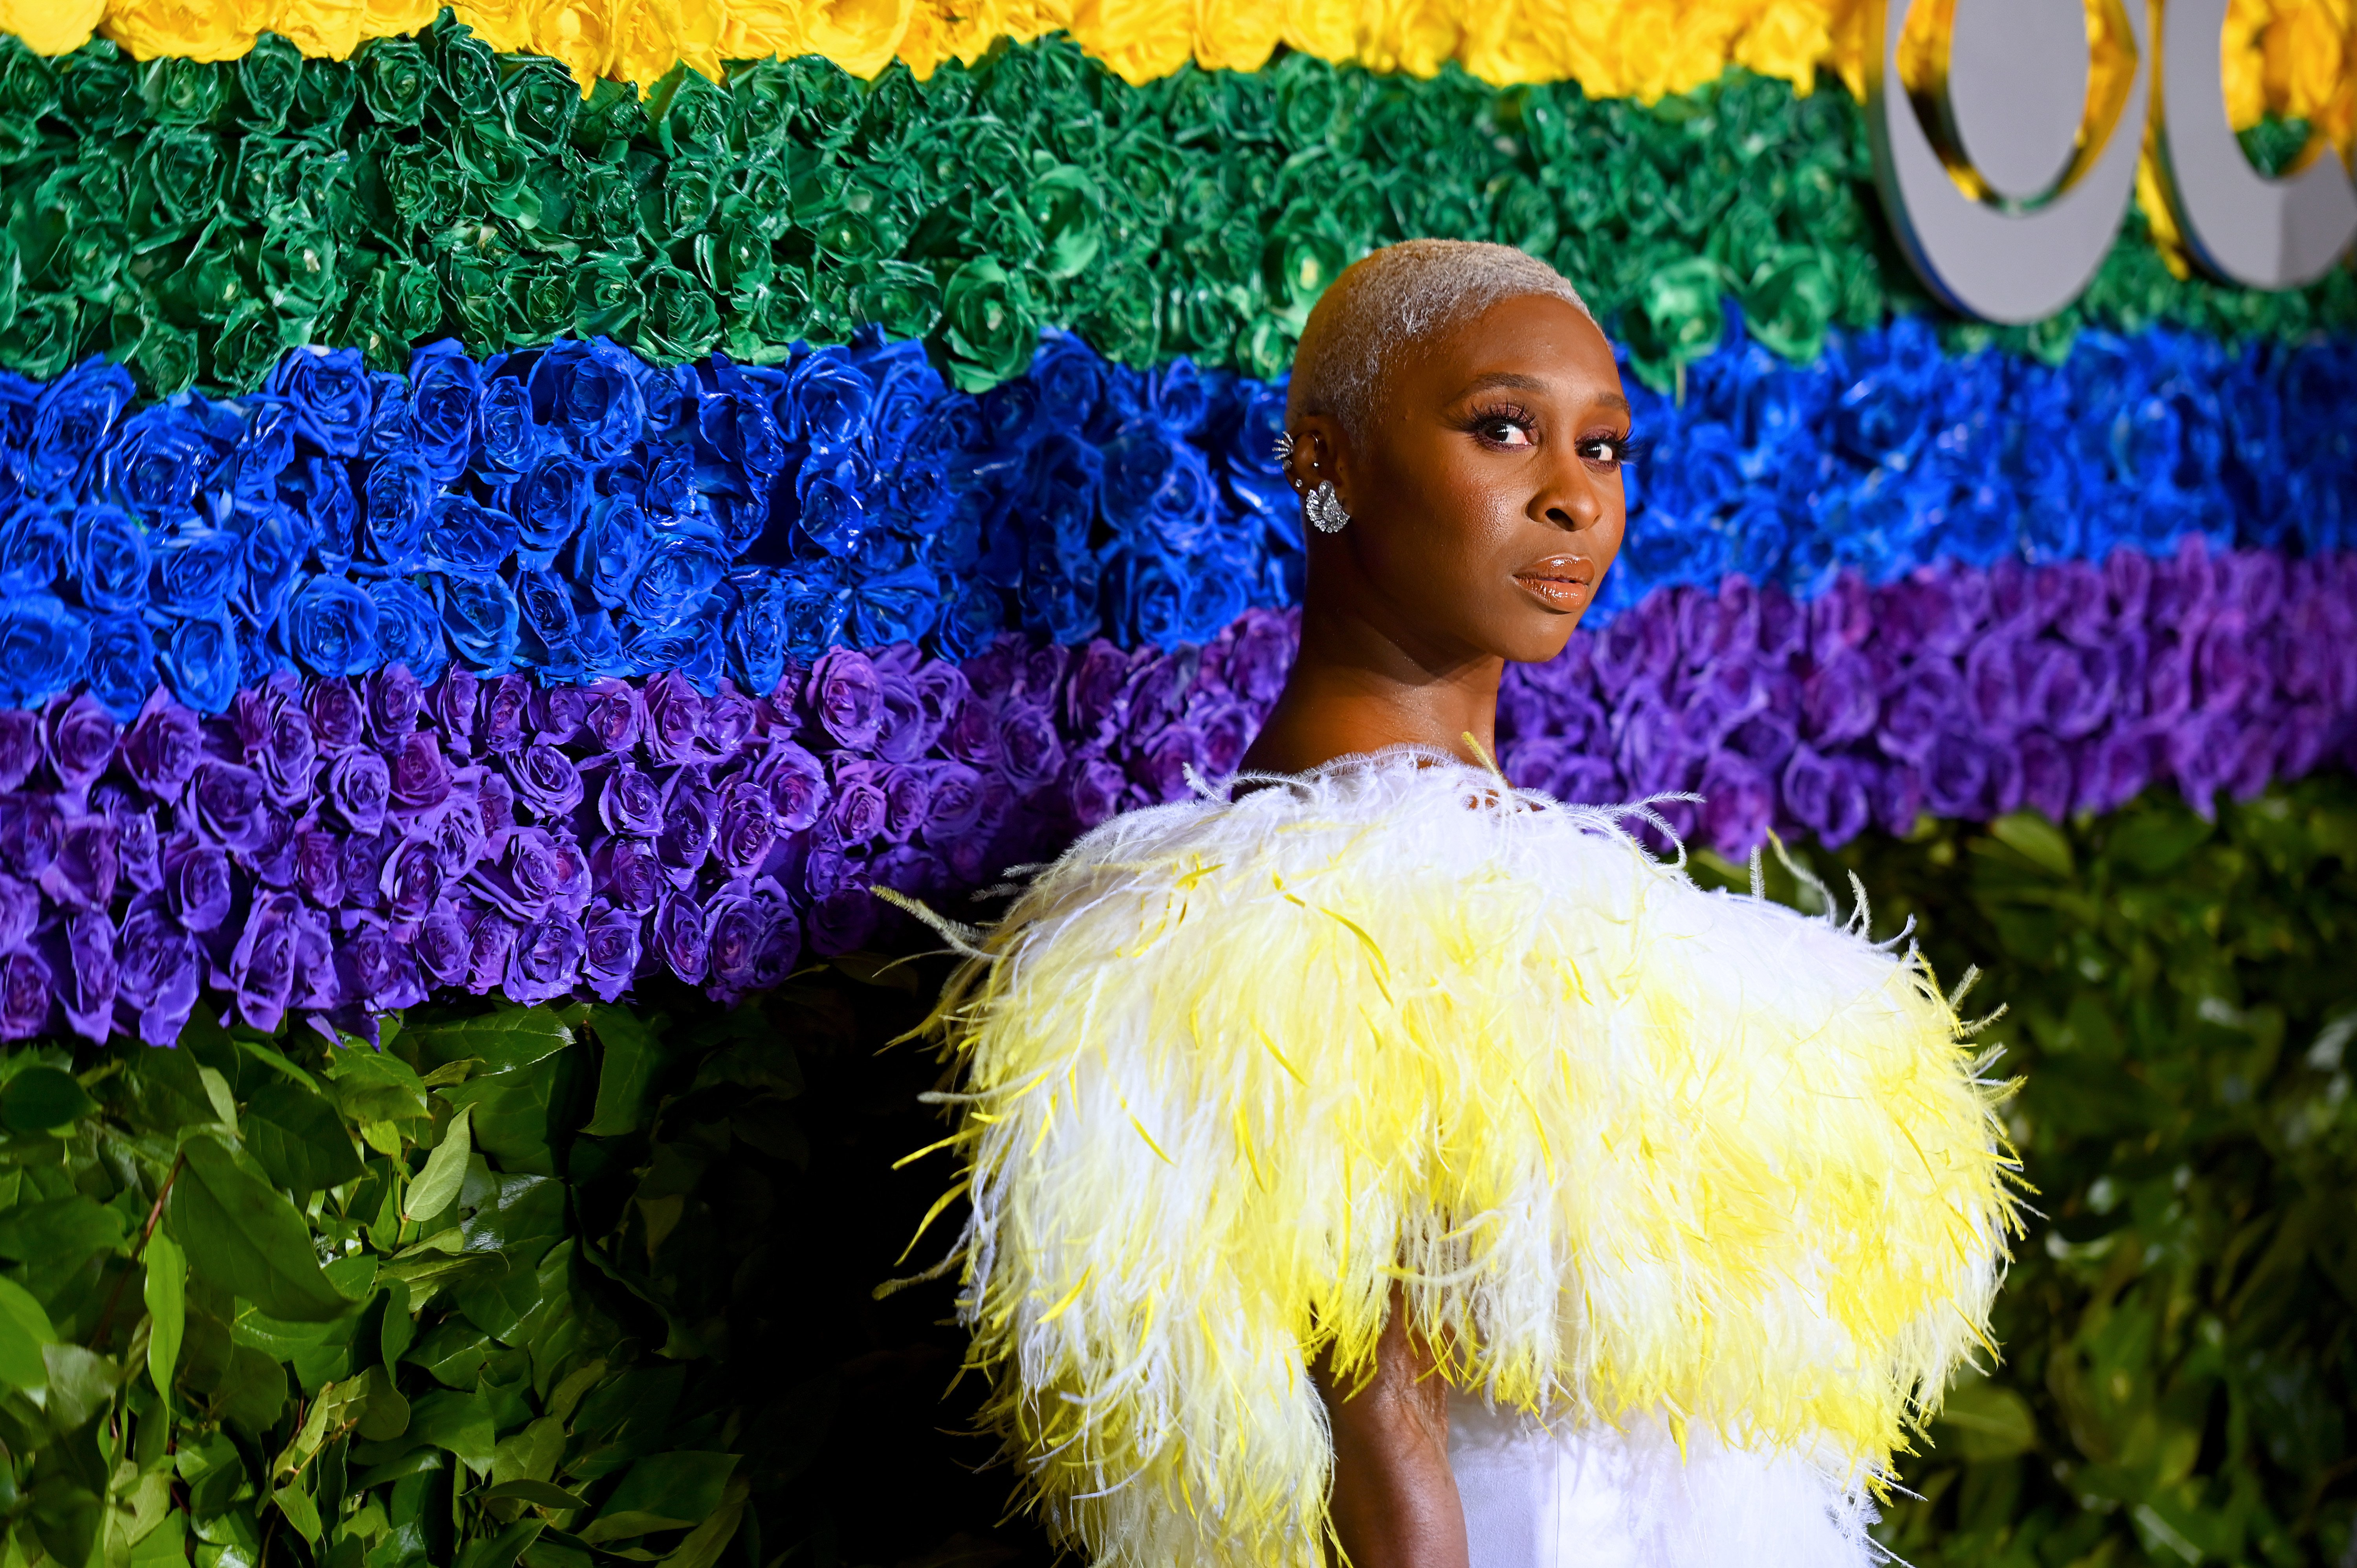 Cynthia Erivo at the 73rd Annual Tony Awards on June 09, 2019 in New York City | Photo: Getty Images